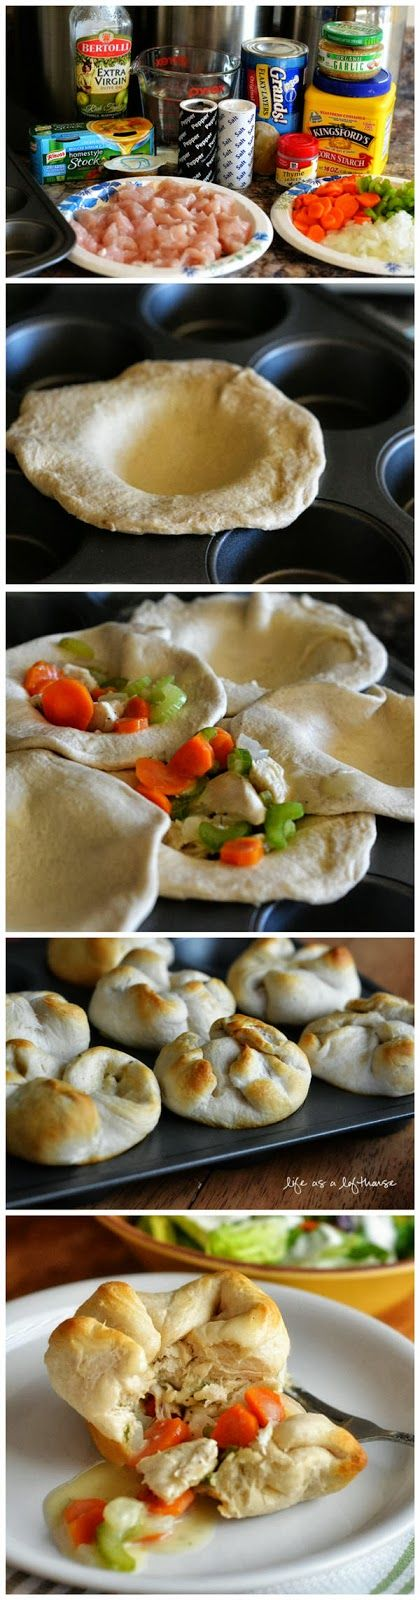 Chicken Pot Pie Biscuits. They fit inside a muffin tin. Mmmm delicious!  :)